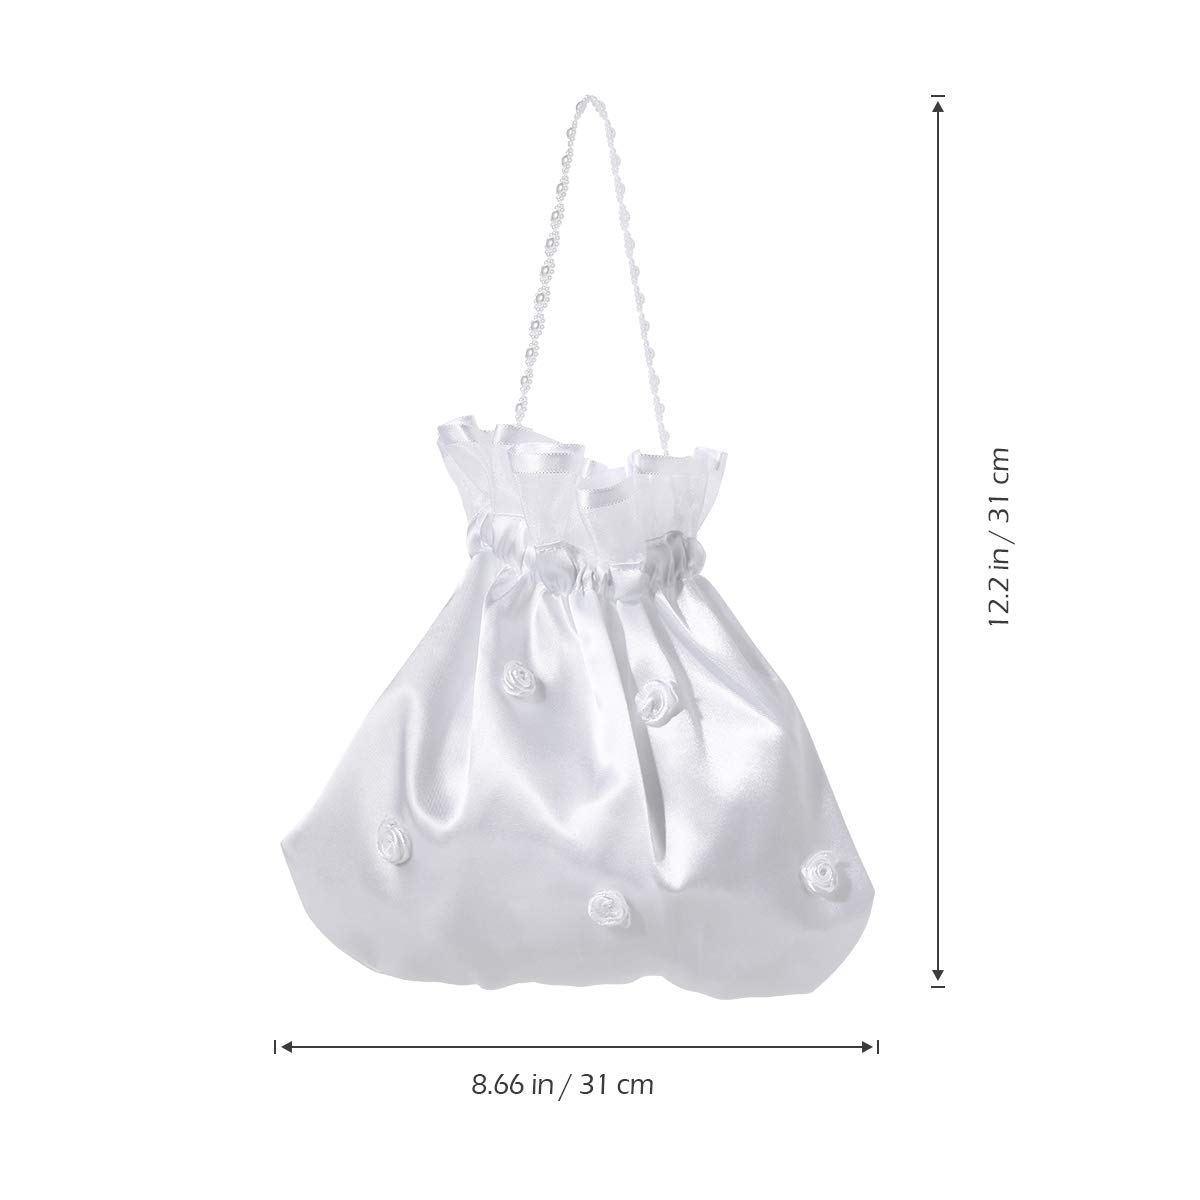 LUOEM Satin Bridal Wedding Money Bag White Bridal Bridesmaid Satin Flower Decorated Bag Handbag Pearl Dollar Dance Bridal Purse Wedding Favor by LUOEM (Image #4)